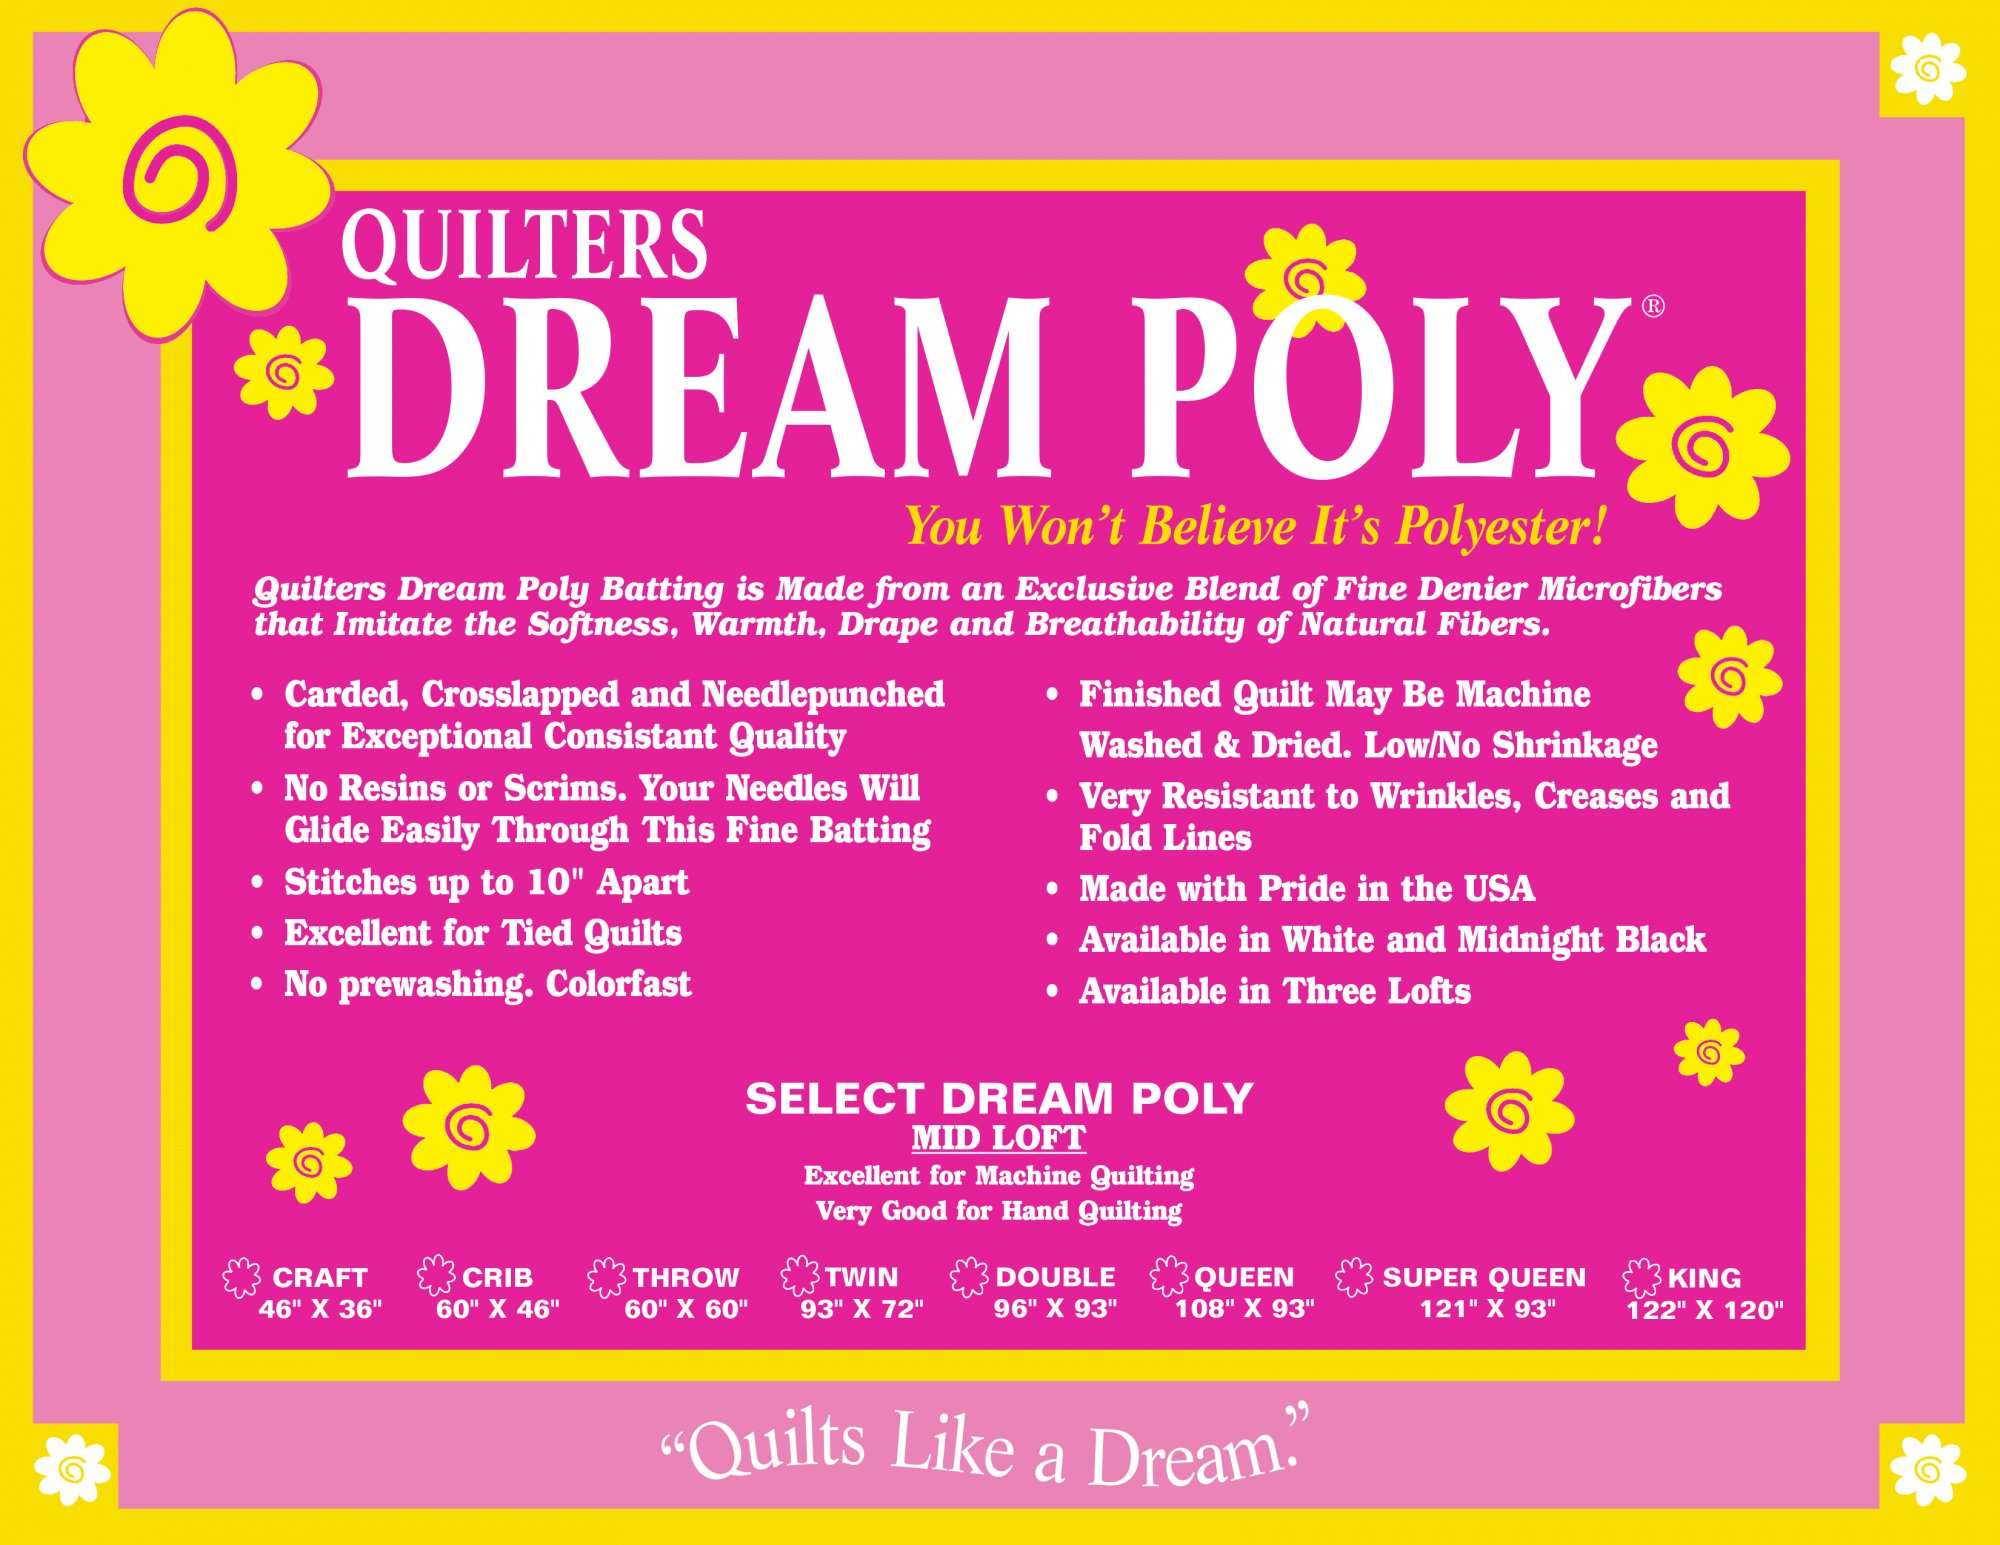 Quilters Dream Poly Select - Super Queen